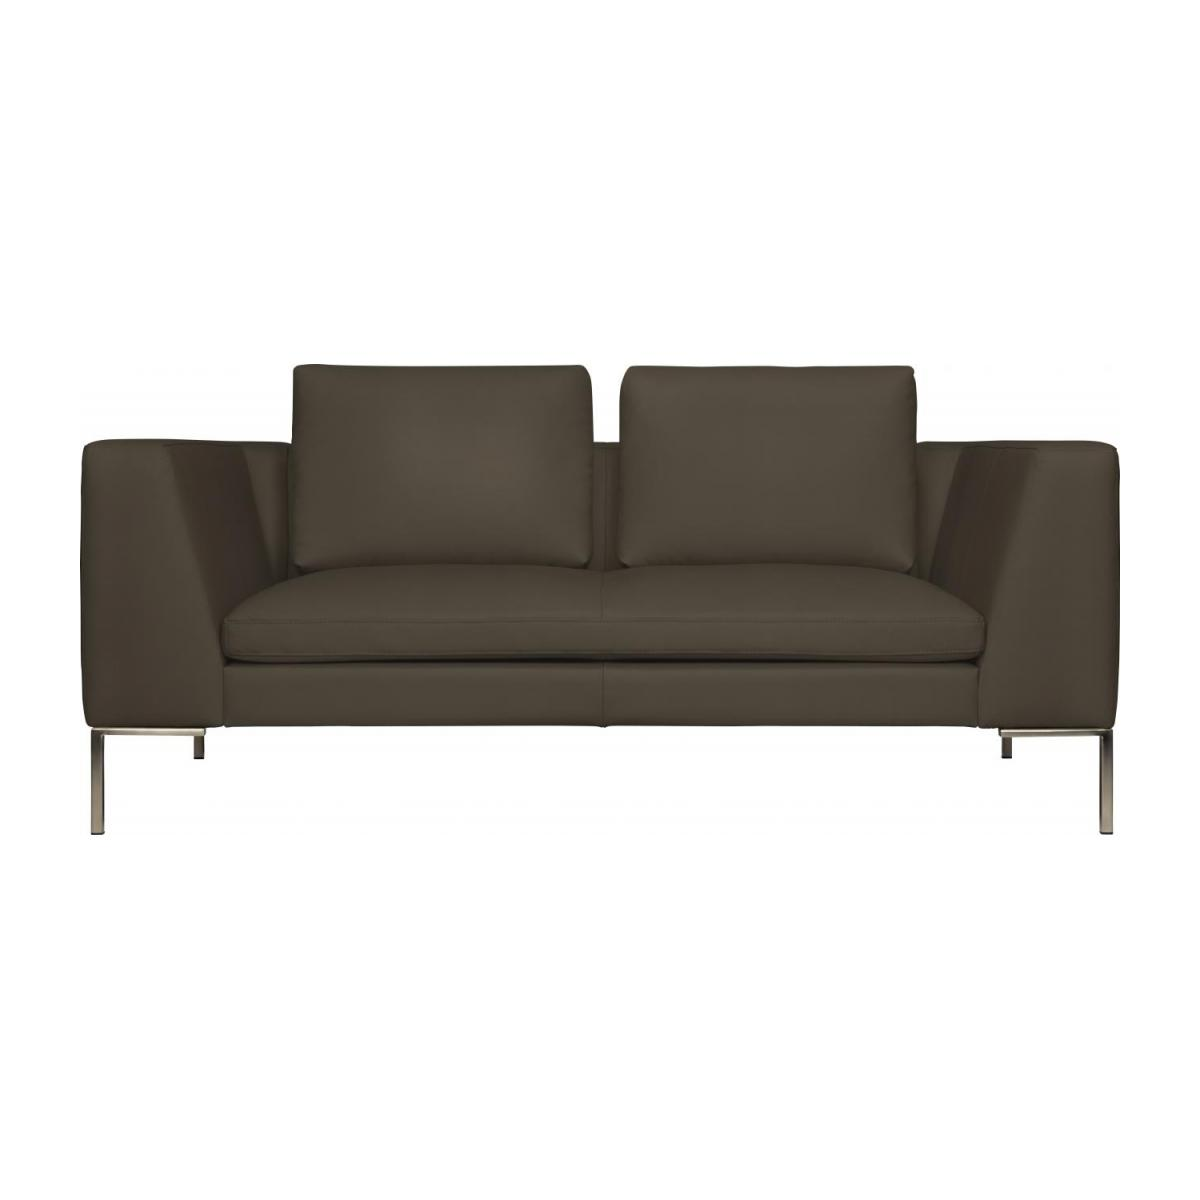 2 seater sofa in Eton veined leather, stone n°4